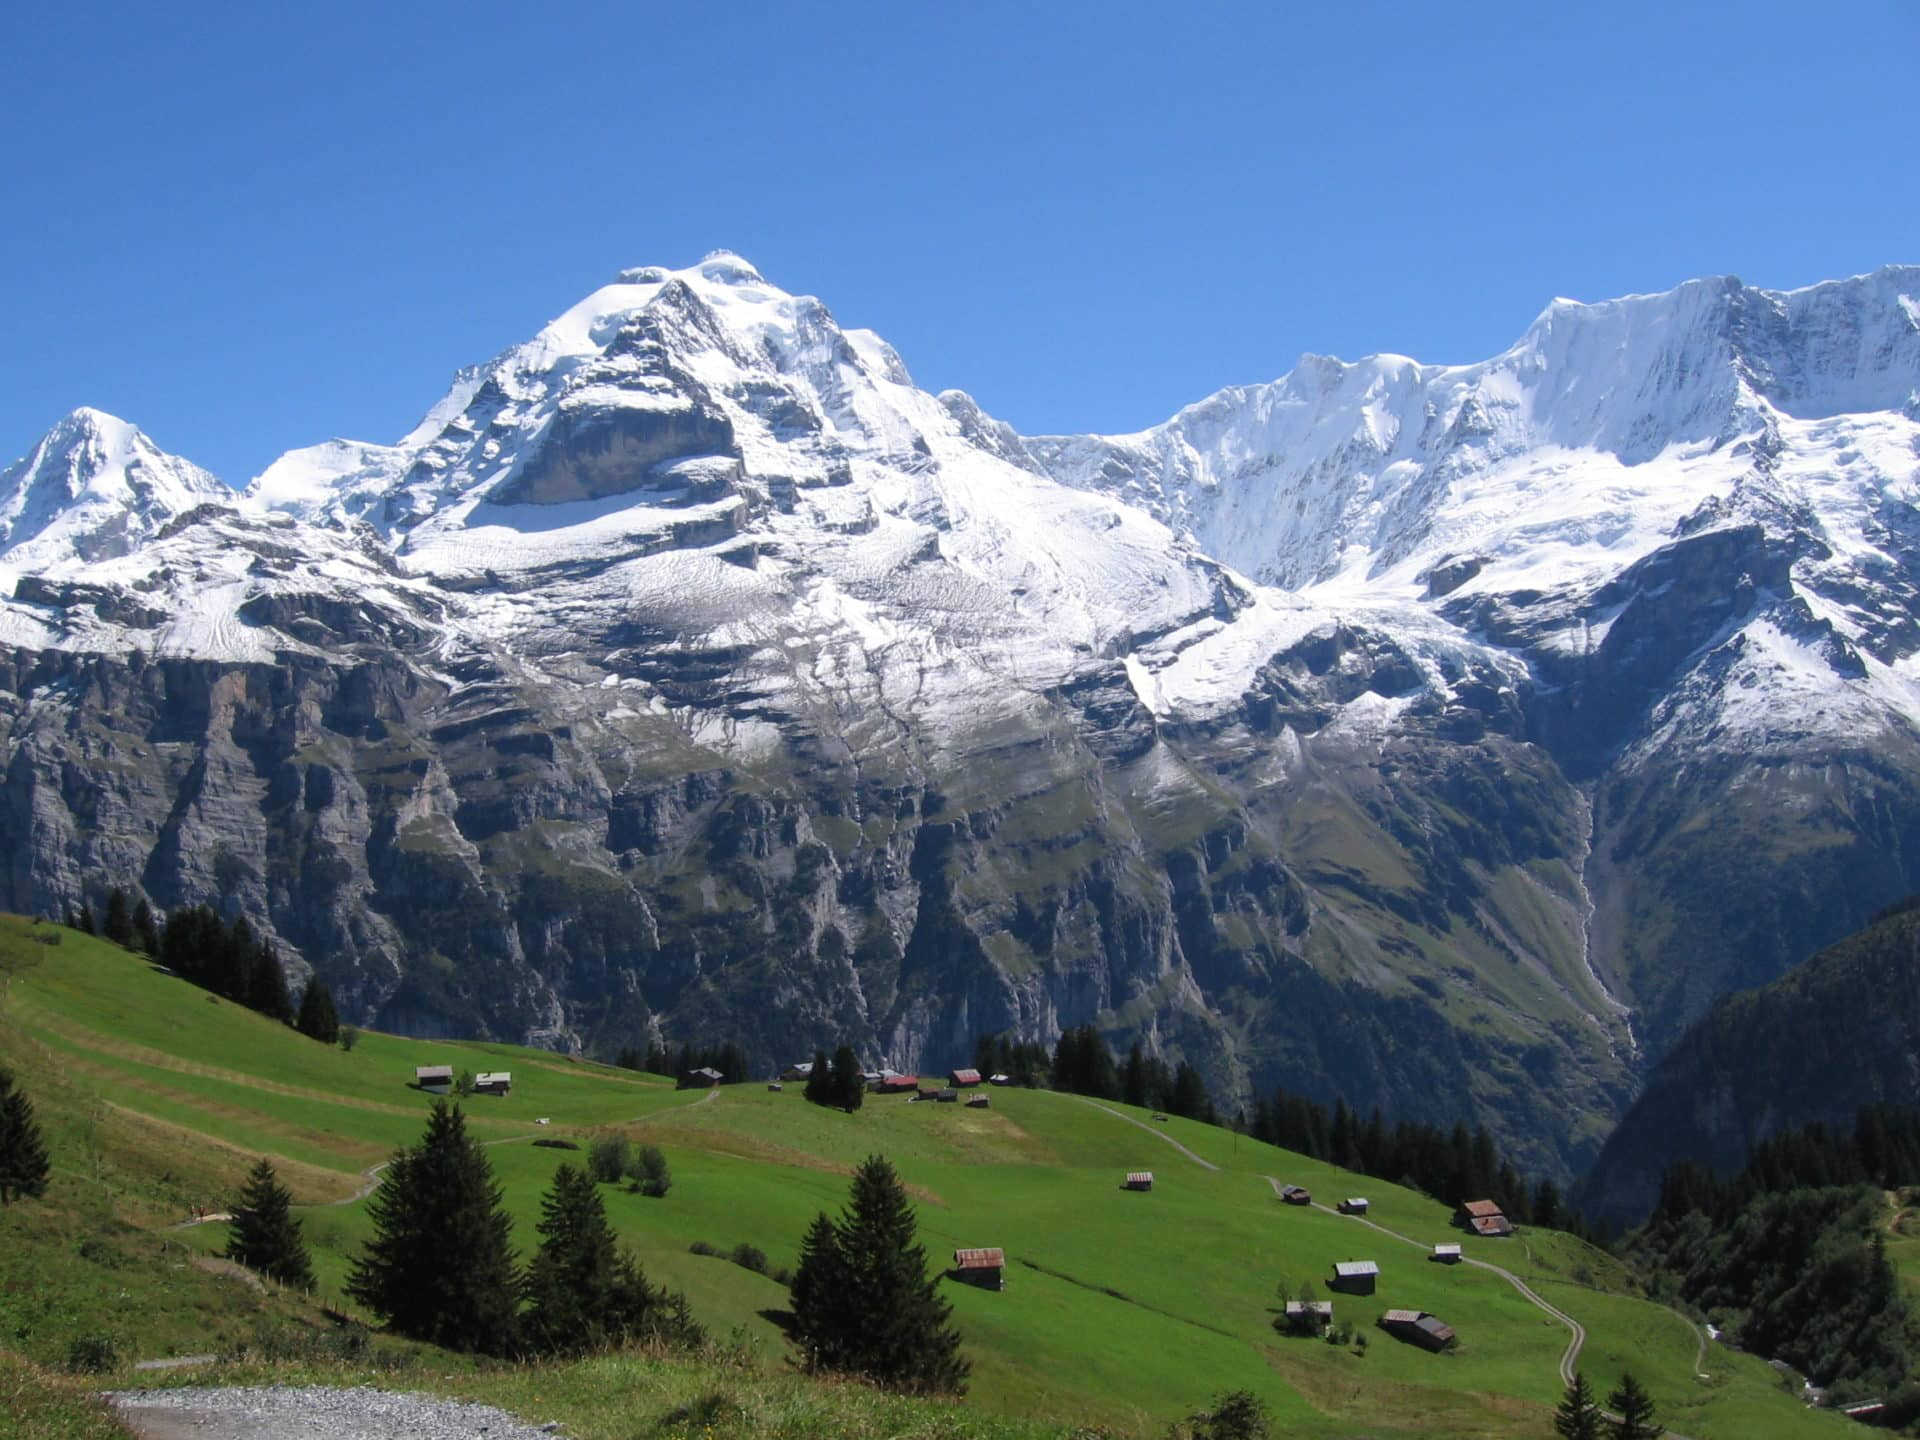 Jungfrau 2-day guided ascent. 2-day trip. IFMGA/UIAGM leader